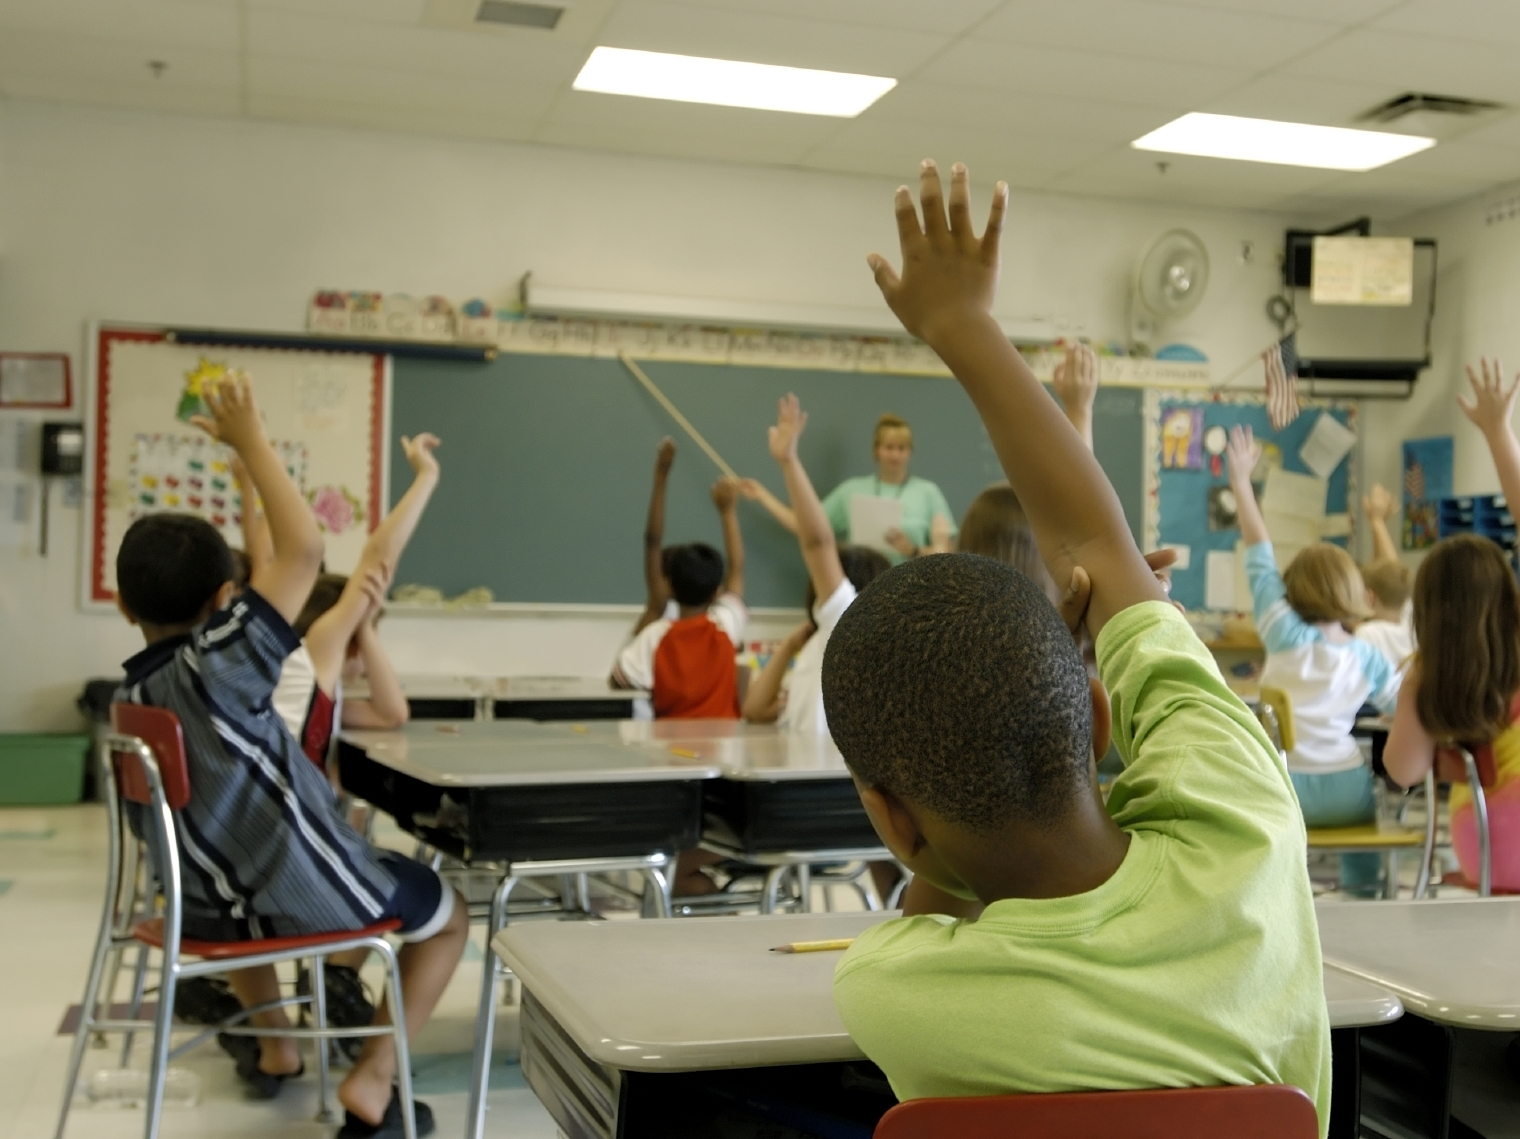 Teachers' Expectations Can Influence How Students Perform